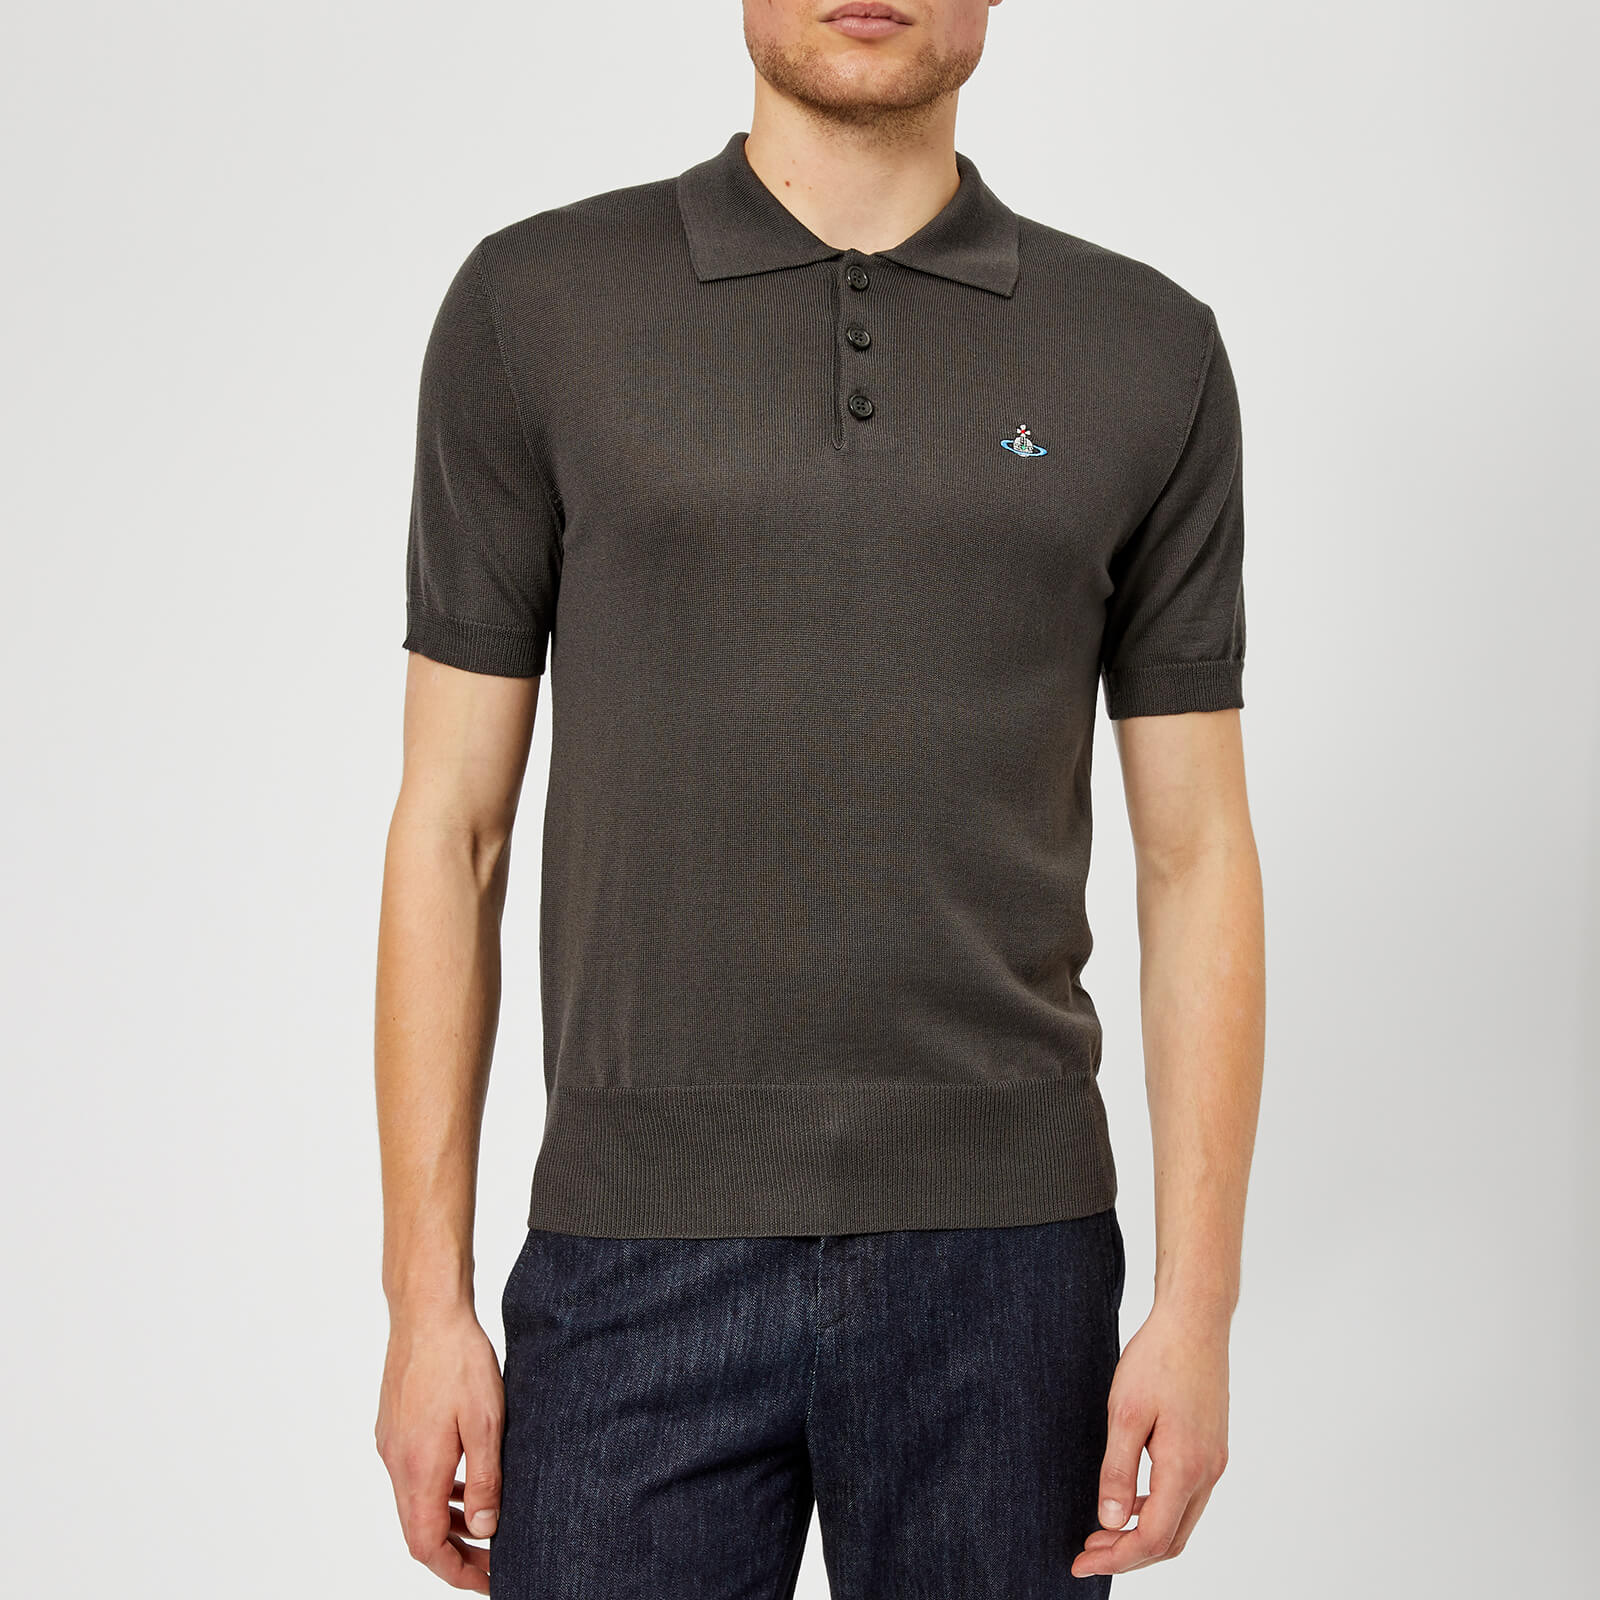 8b691833 Vivienne Westwood Men's Classic Knitted Polo Shirt - Dark Grey - Free UK  Delivery over £50